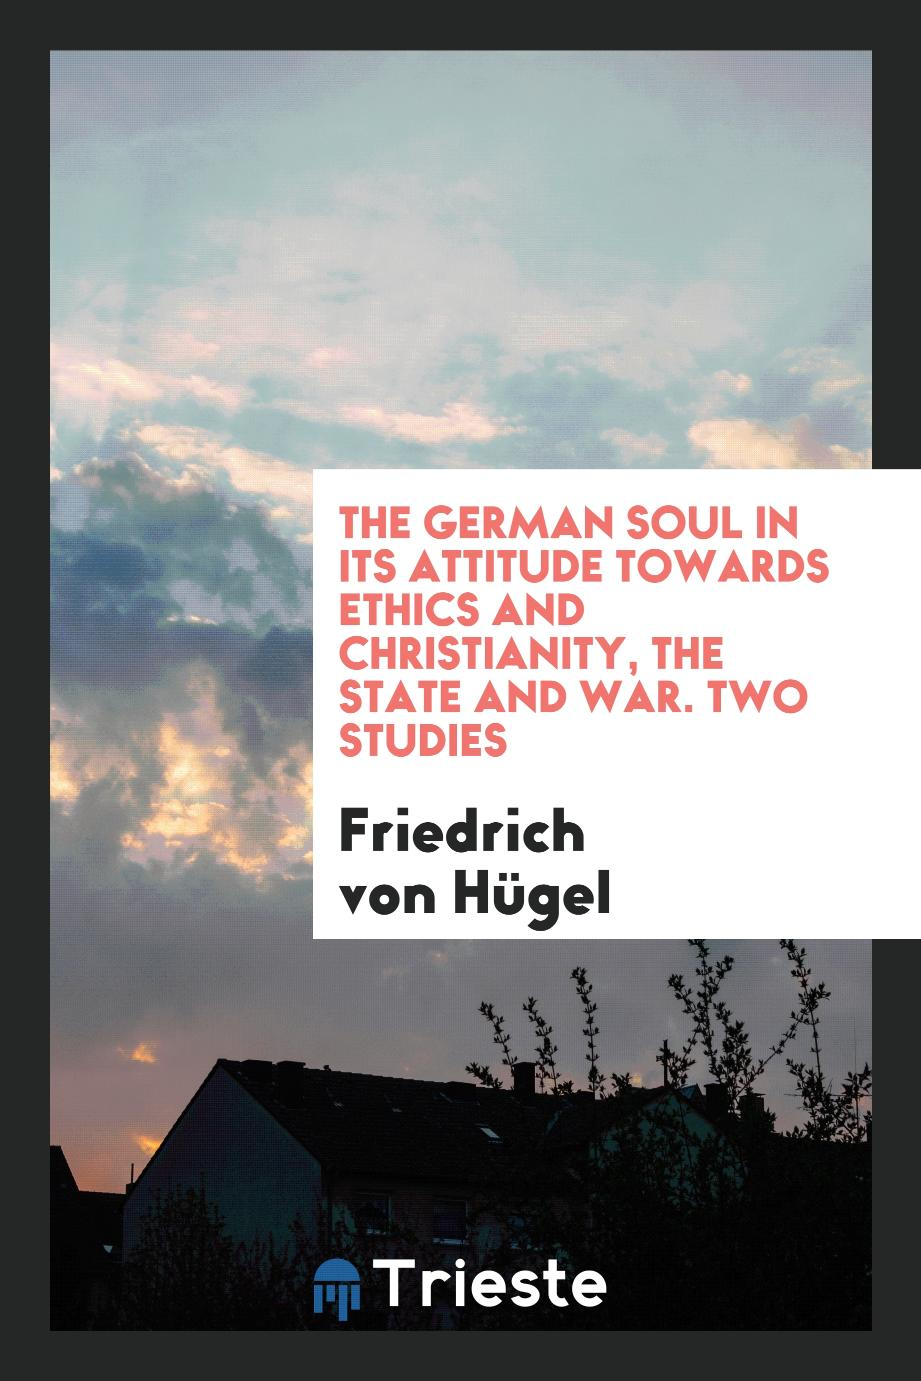 The German Soul in Its Attitude Towards Ethics and Christianity, the State and War. Two Studies